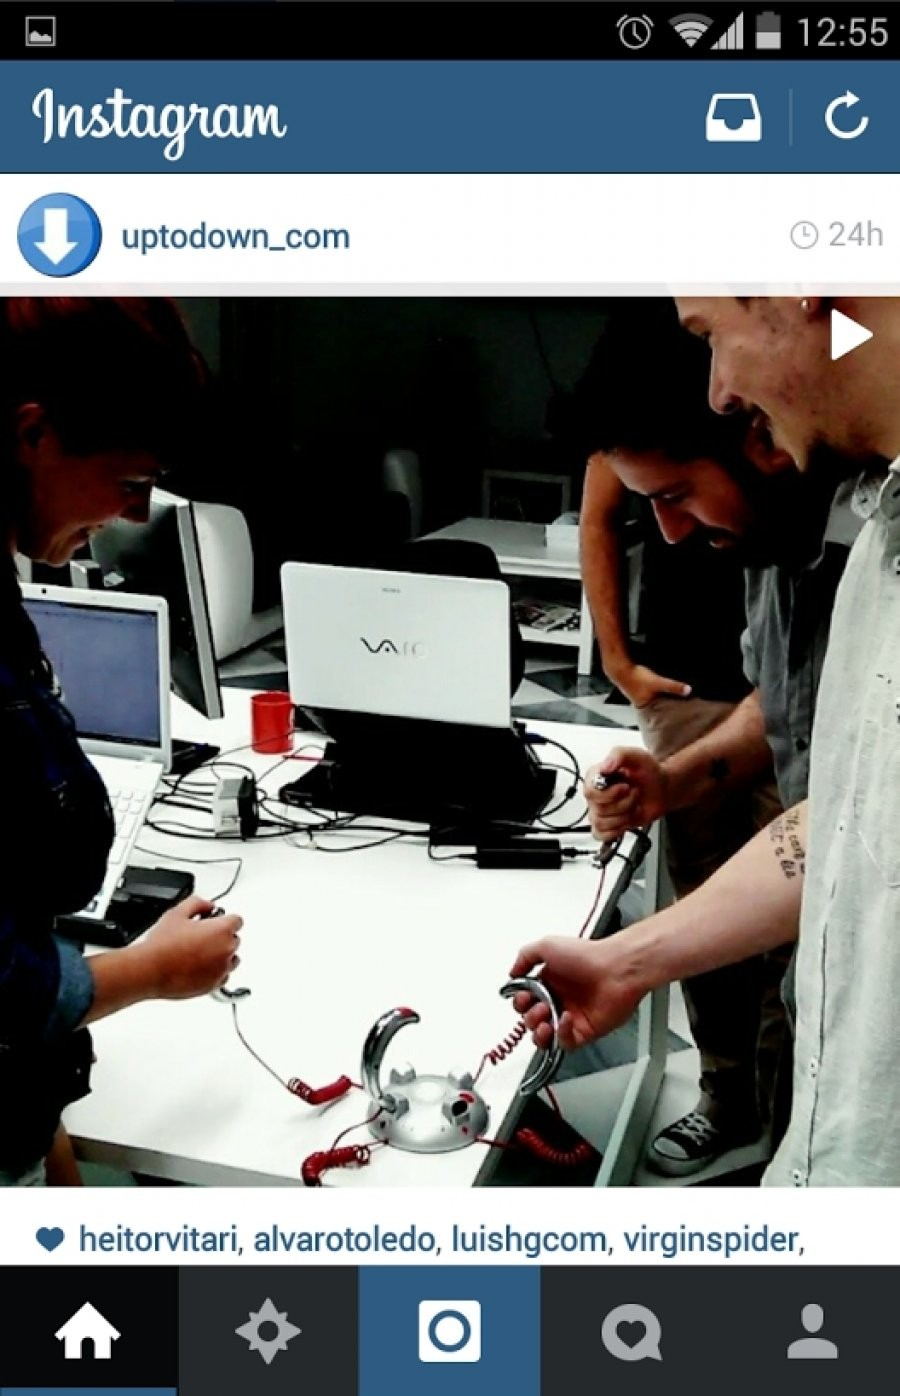 Instagram campaign with image of people playing with electronic device